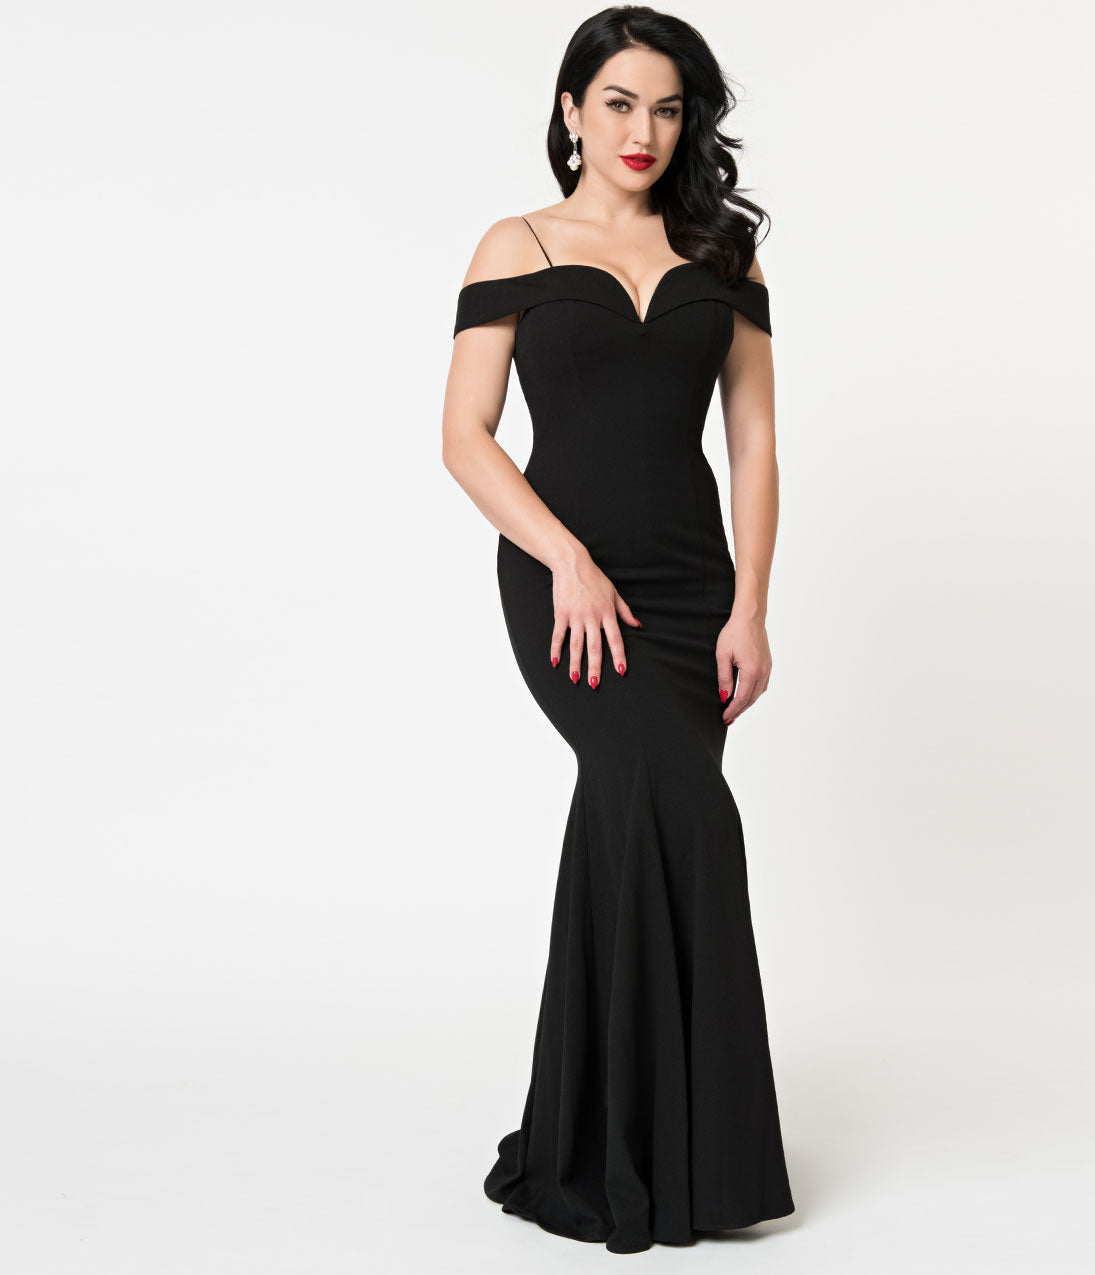 Vintage Evening Dresses and Formal Evening Gowns Black Bateau Neckline Mermaid Style Full Length Gown $110.00 AT vintagedancer.com